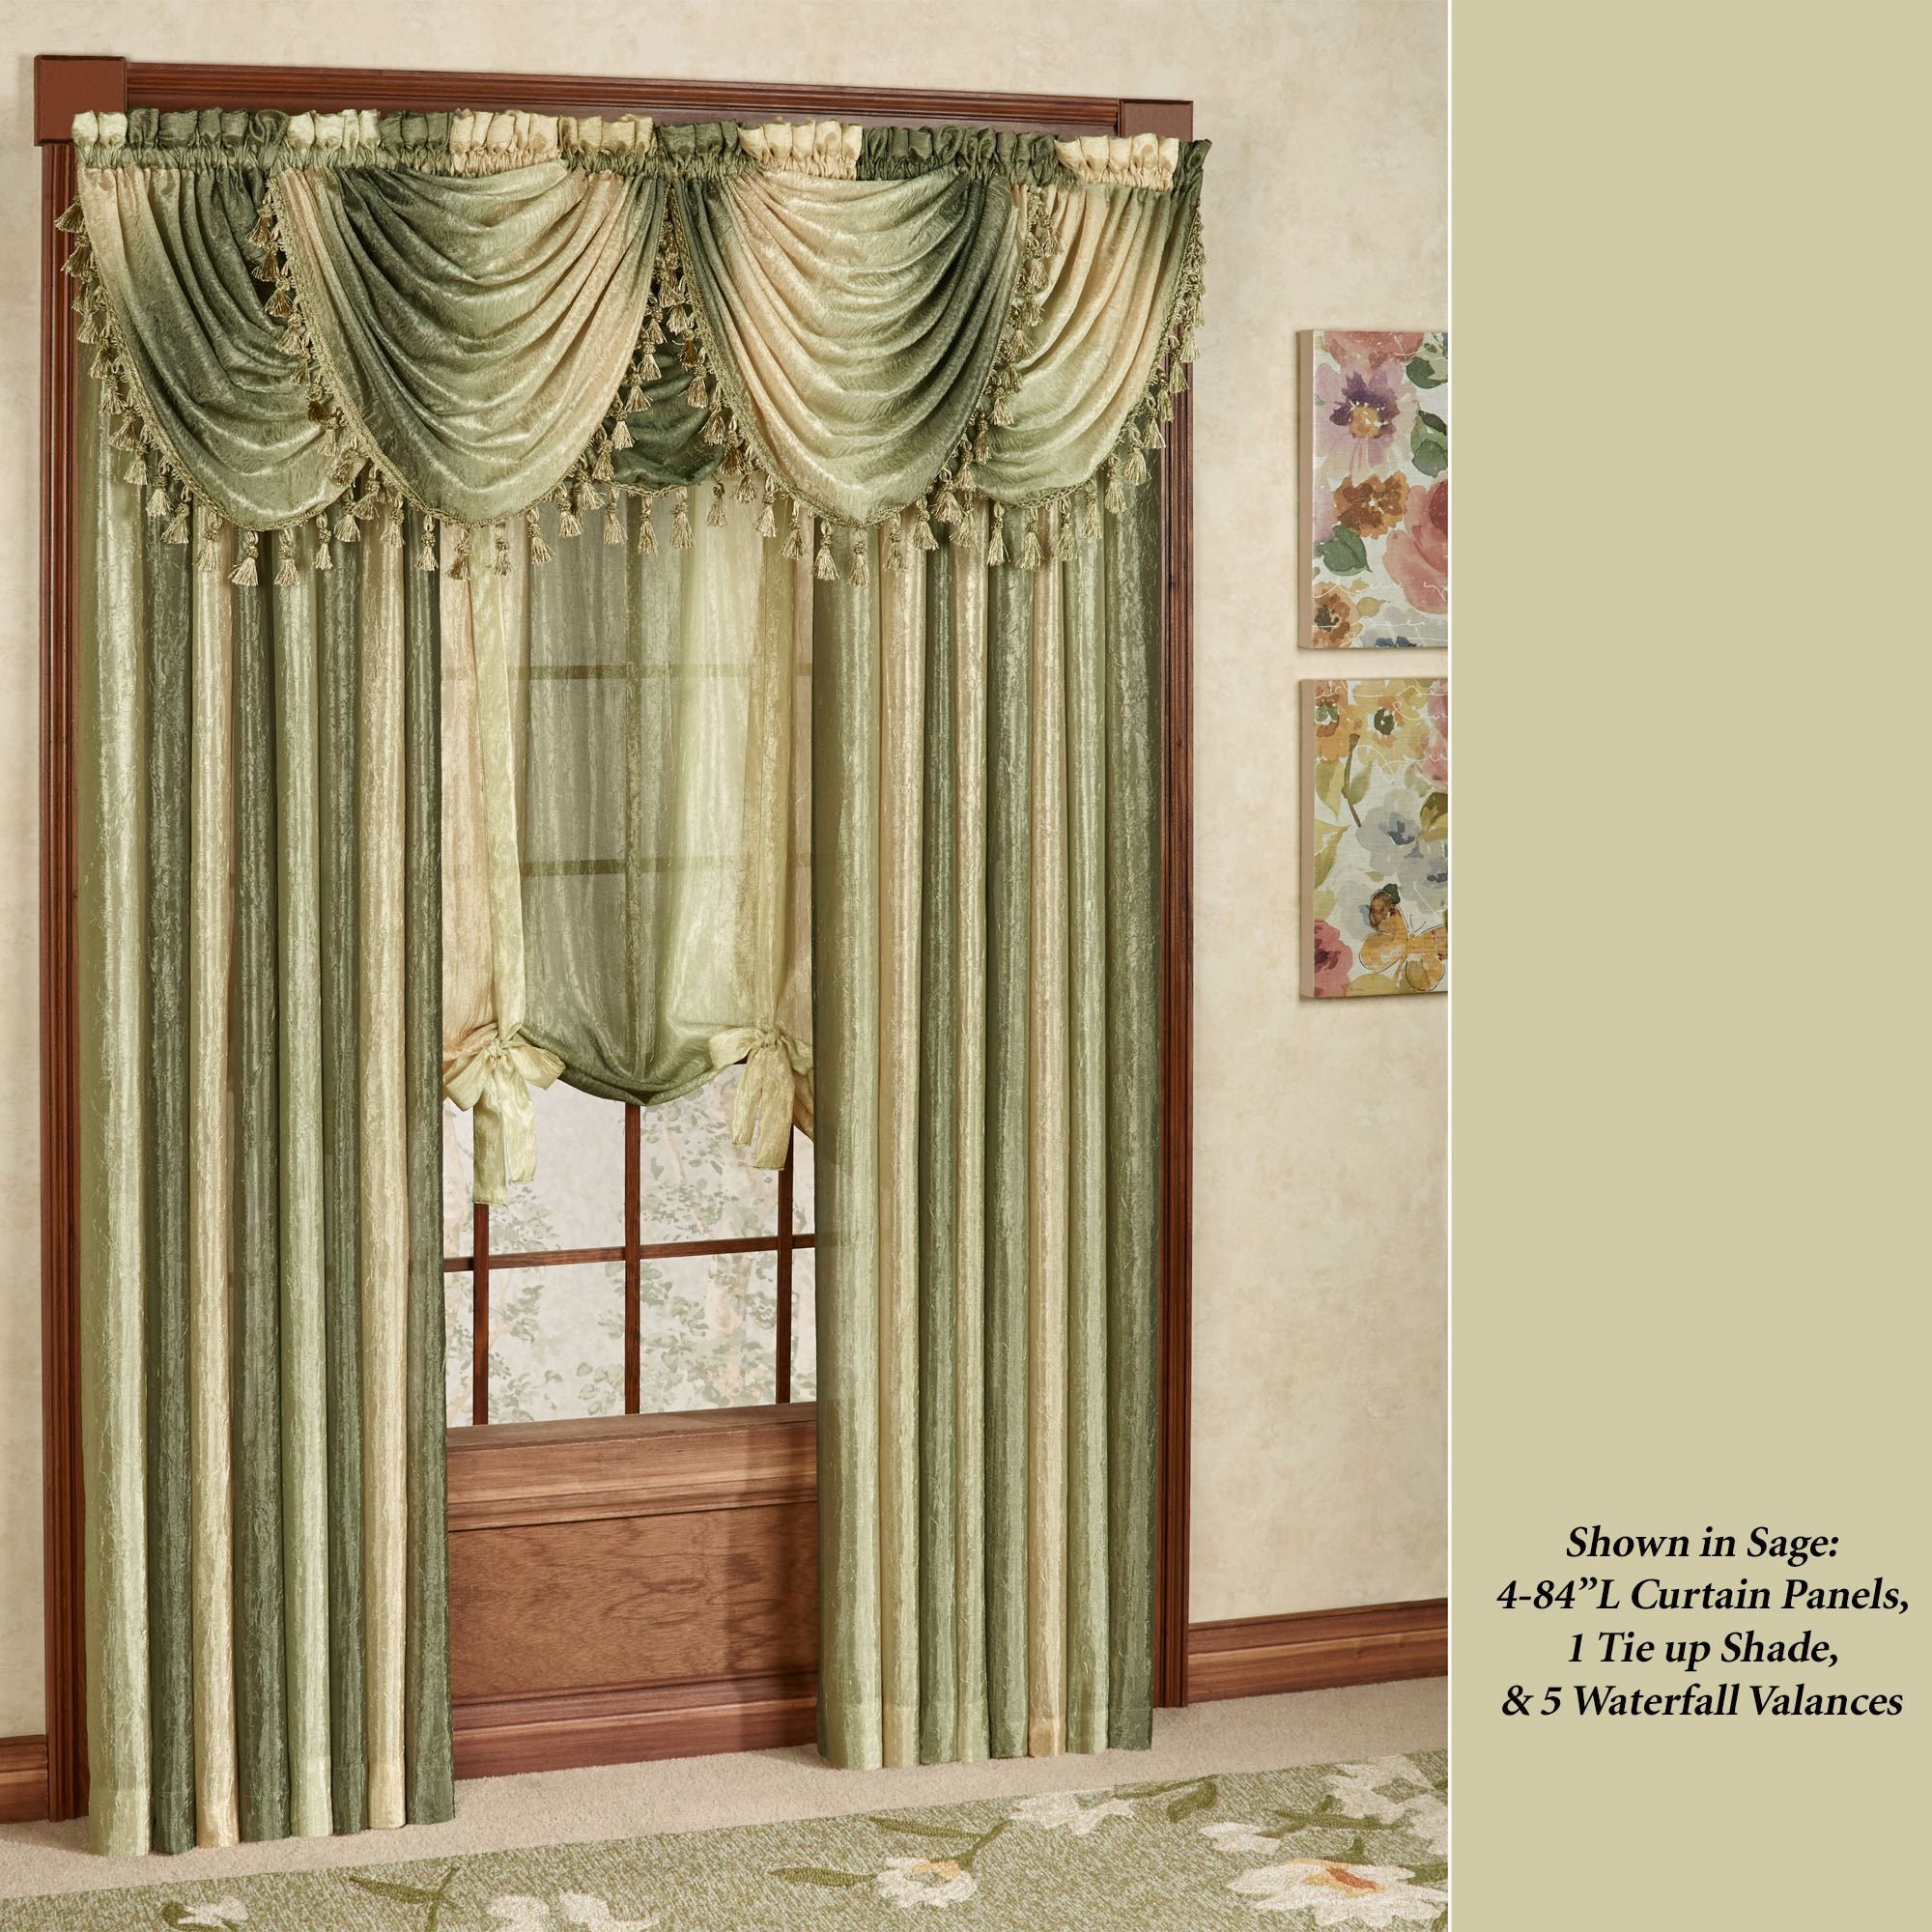 valance curtains ombre semi-sheer waterfall valances YTQFPTG